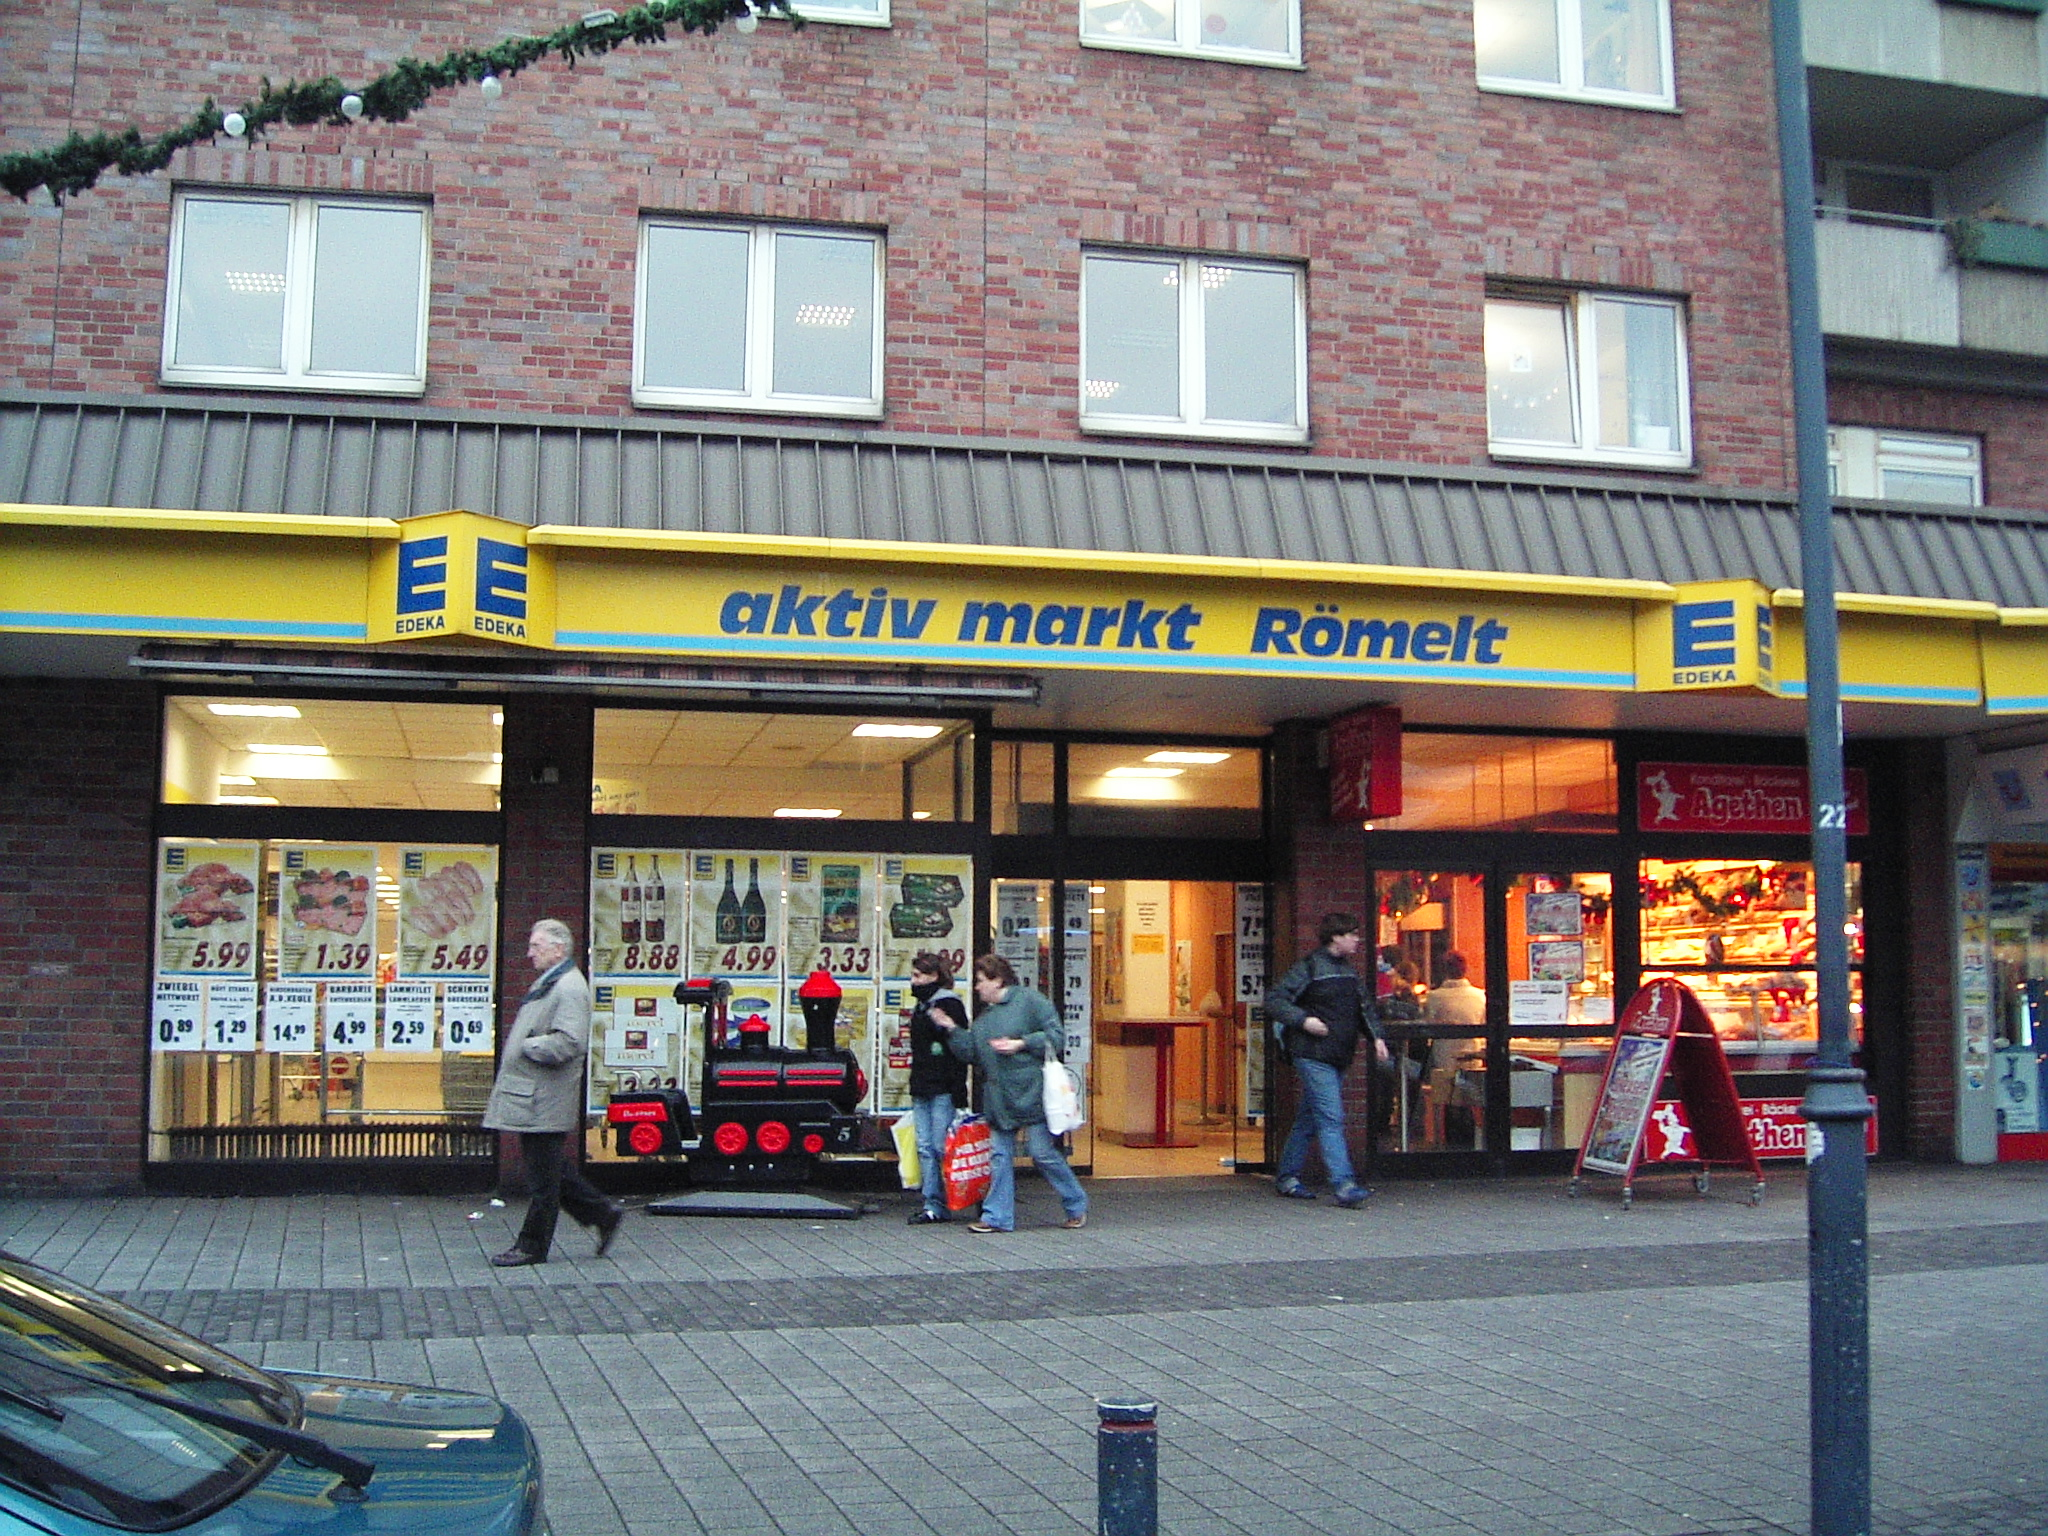 Food retailer in Germany, Edeka